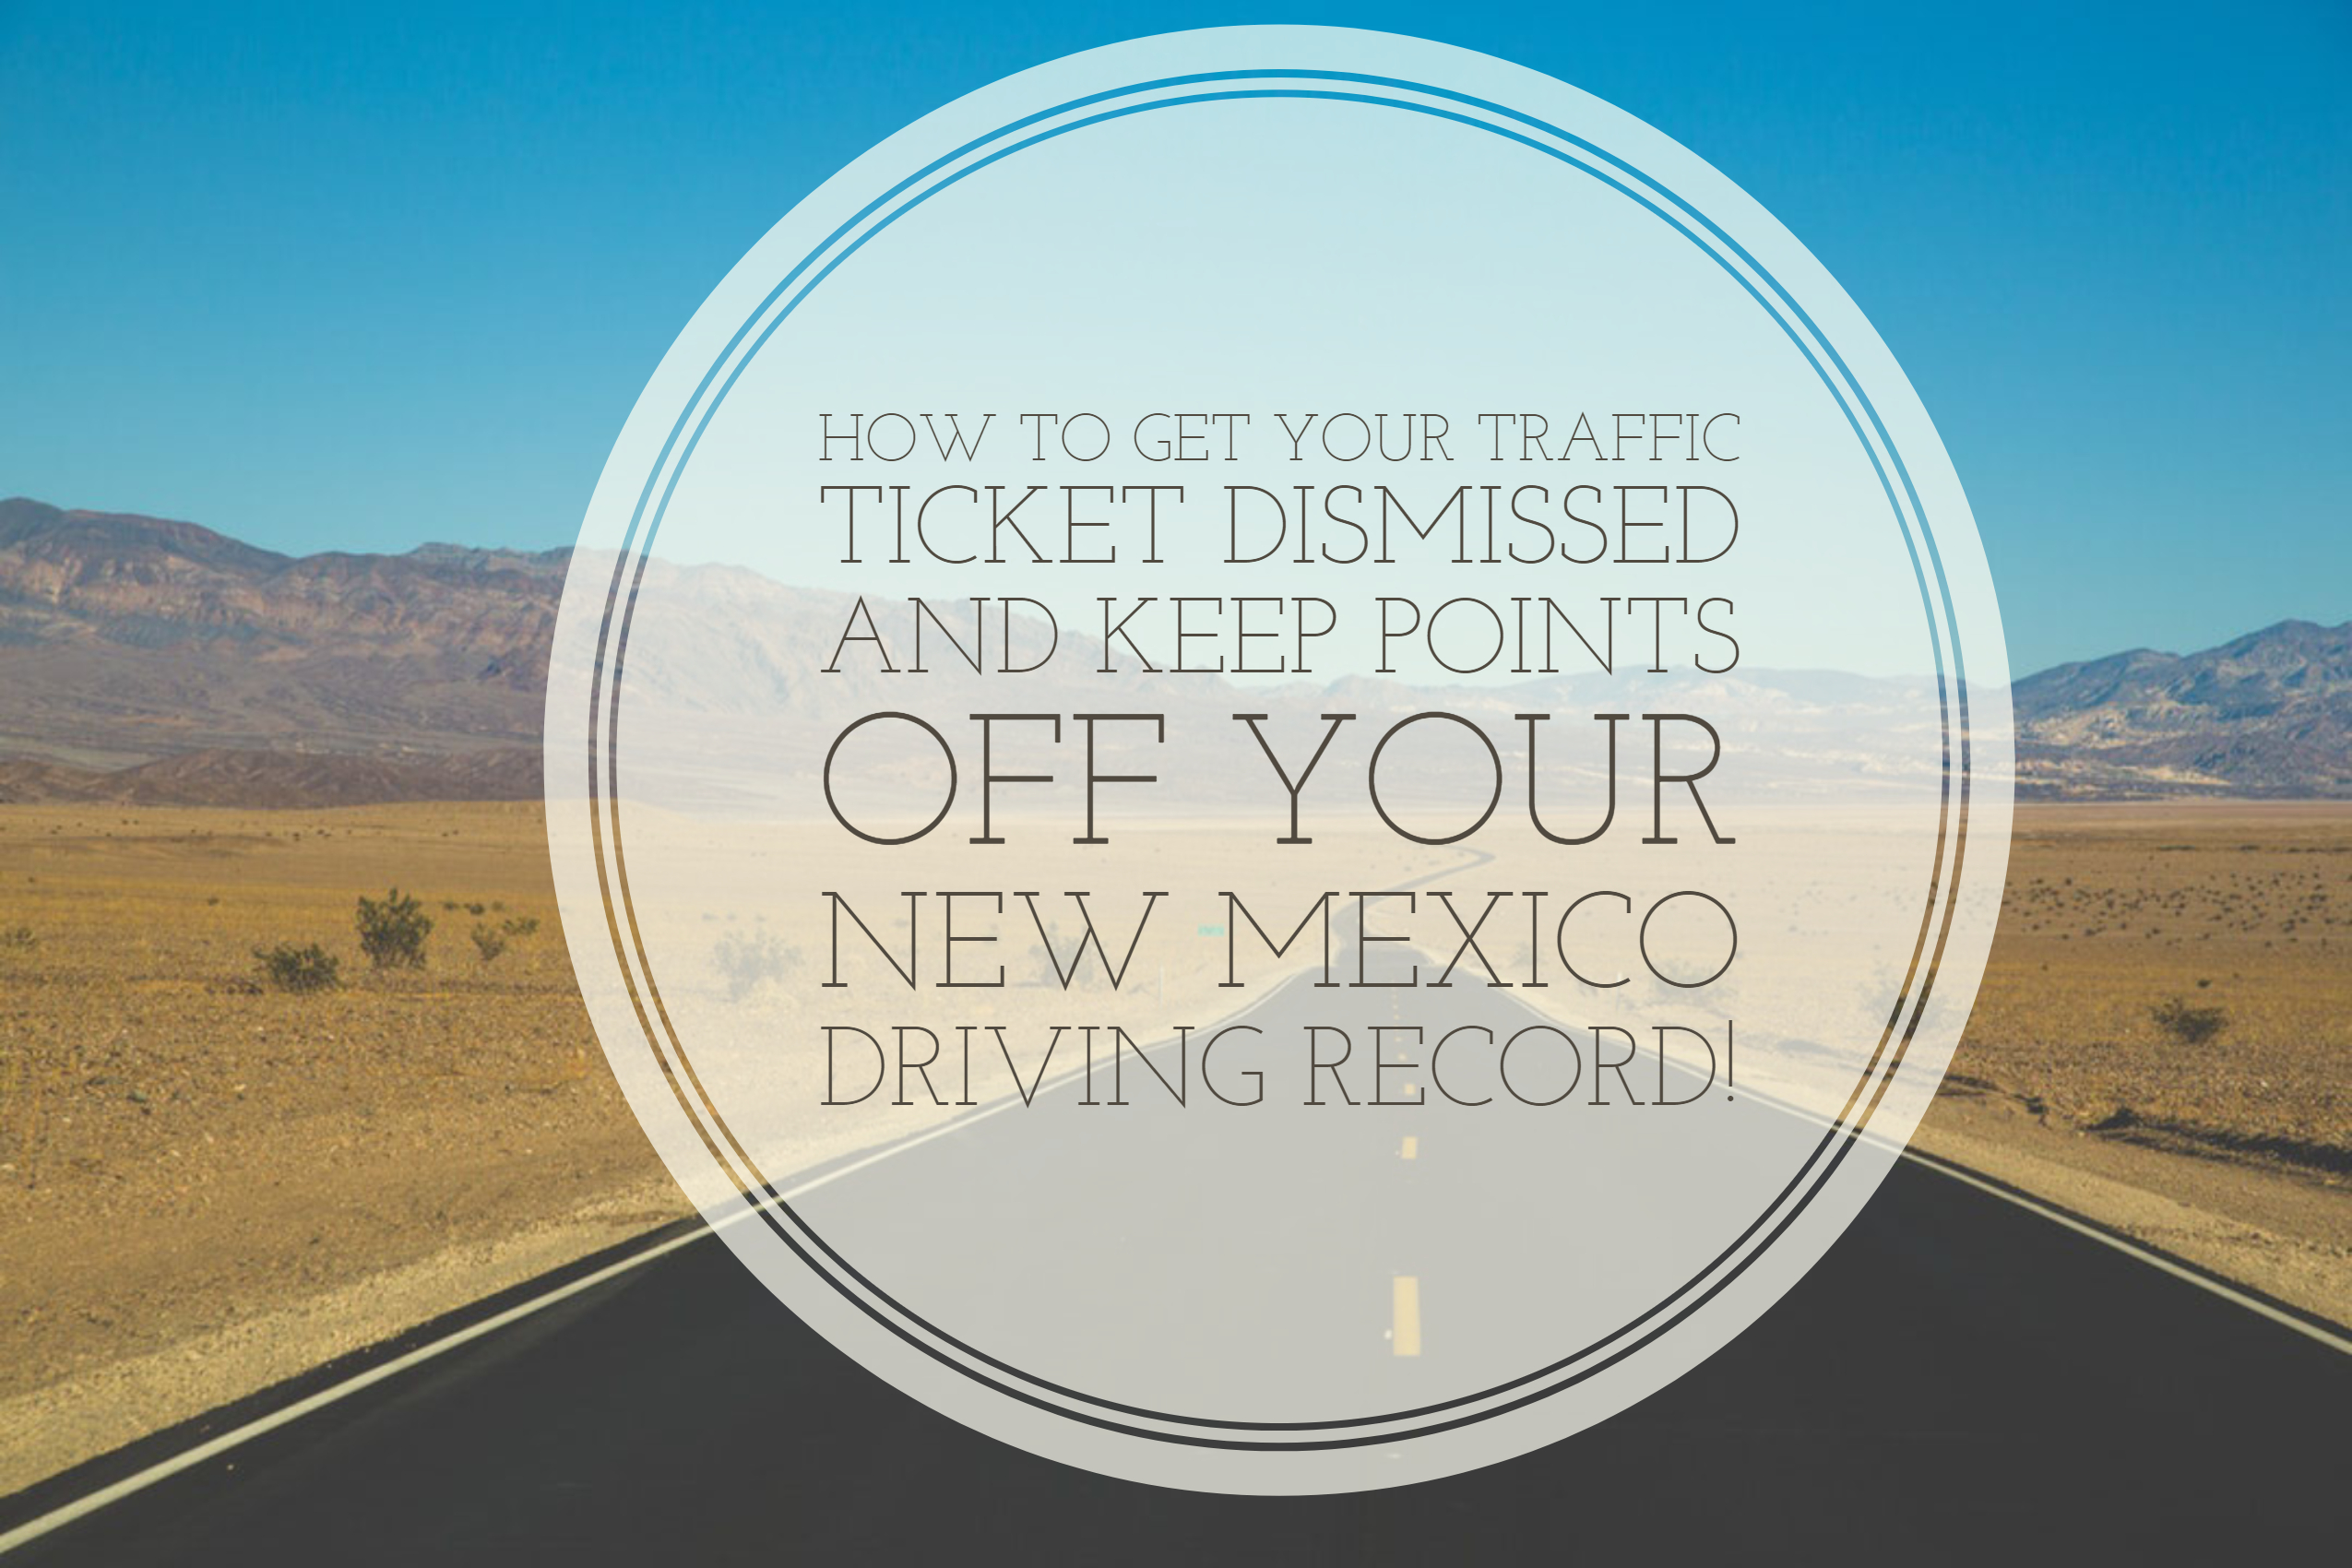 How to Get Your New Mexico Traffic Ticket Dismissed | DMV Assistant